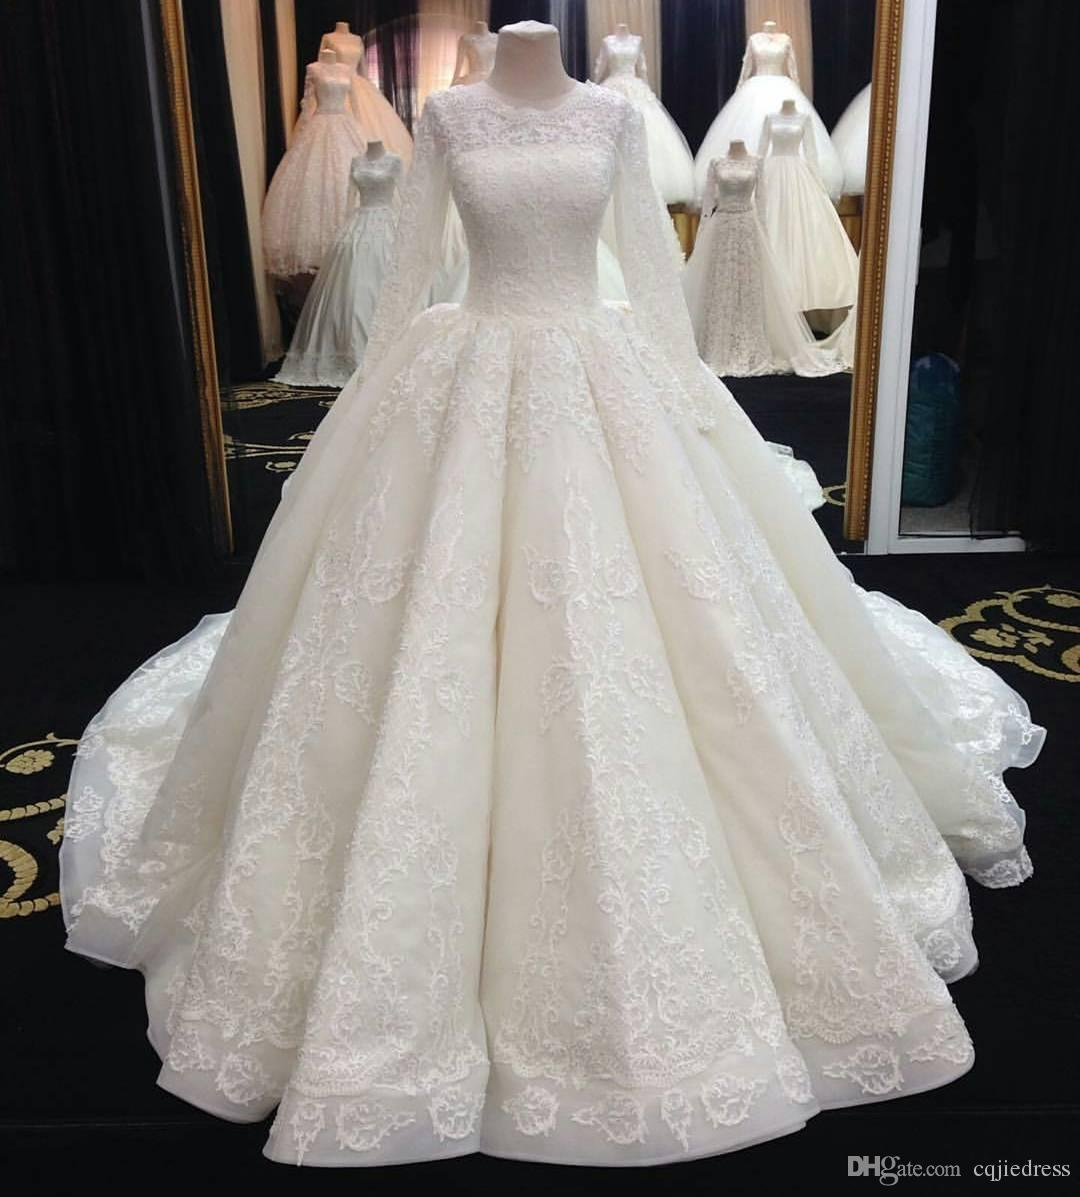 Muslim Wedding Gown Pictures: 2019 New Middle East Muslim Wedding Dresses Long Sleeve